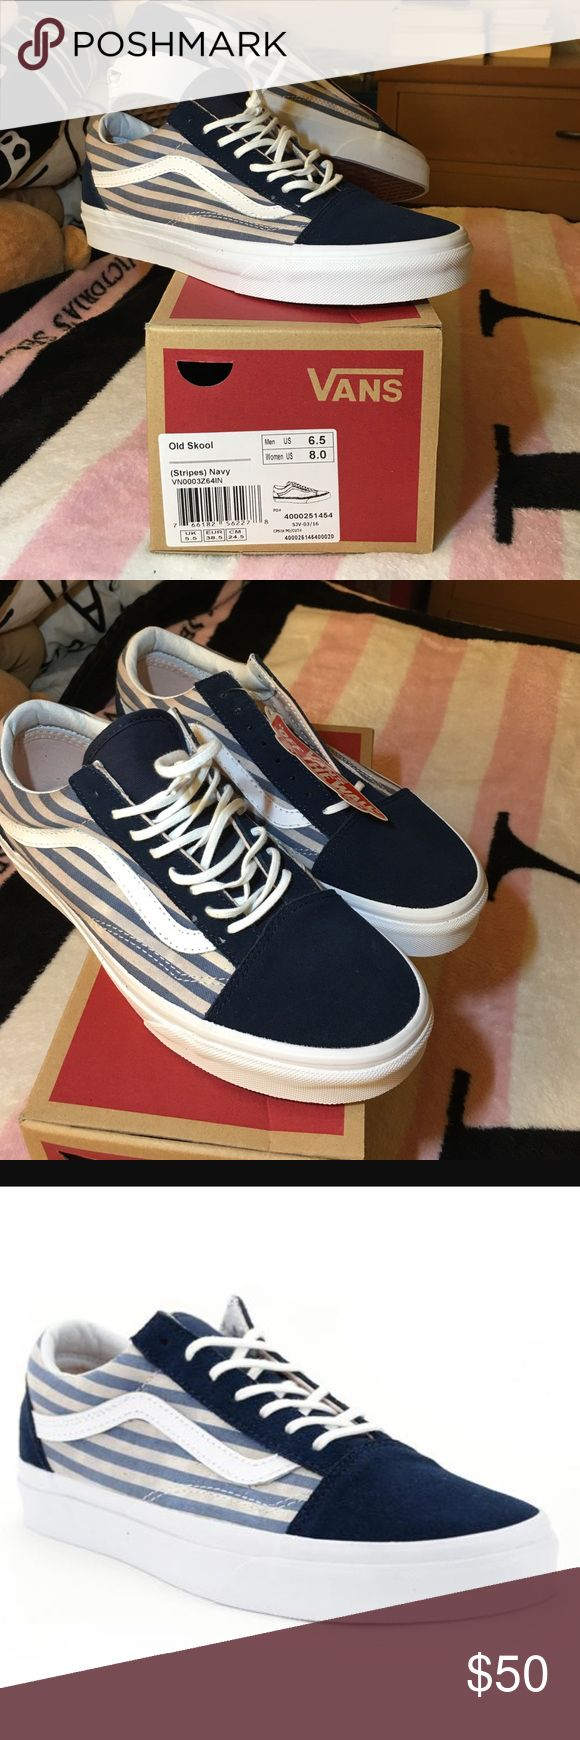 VANS old Skool navy stripes SZ 8 women Women size 8. Vans The Stripes Old Skool, the Vans classic skate shoe and first to bare the iconic sidestripe, is a low top lace-up featuring textile and suede uppers with a stripes print, re-enforced toecaps to withstand repeated wear, signature rubber waffle outsoles, and padded collars for support and flexibility. Vans Shoes Sneakers